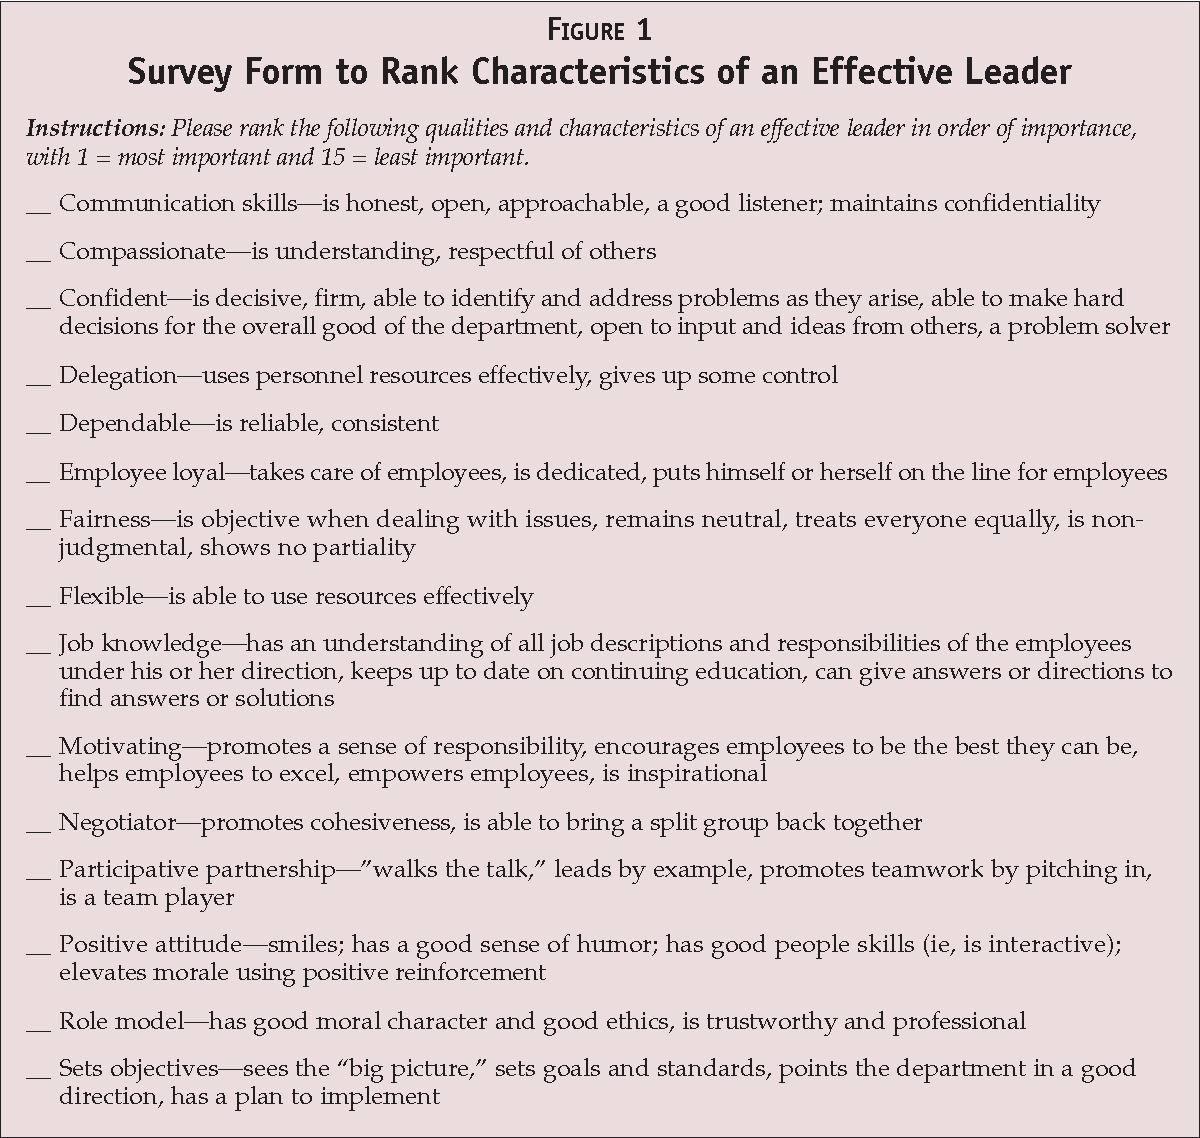 Nurses Views On The Characteristics Of An Effective Leader